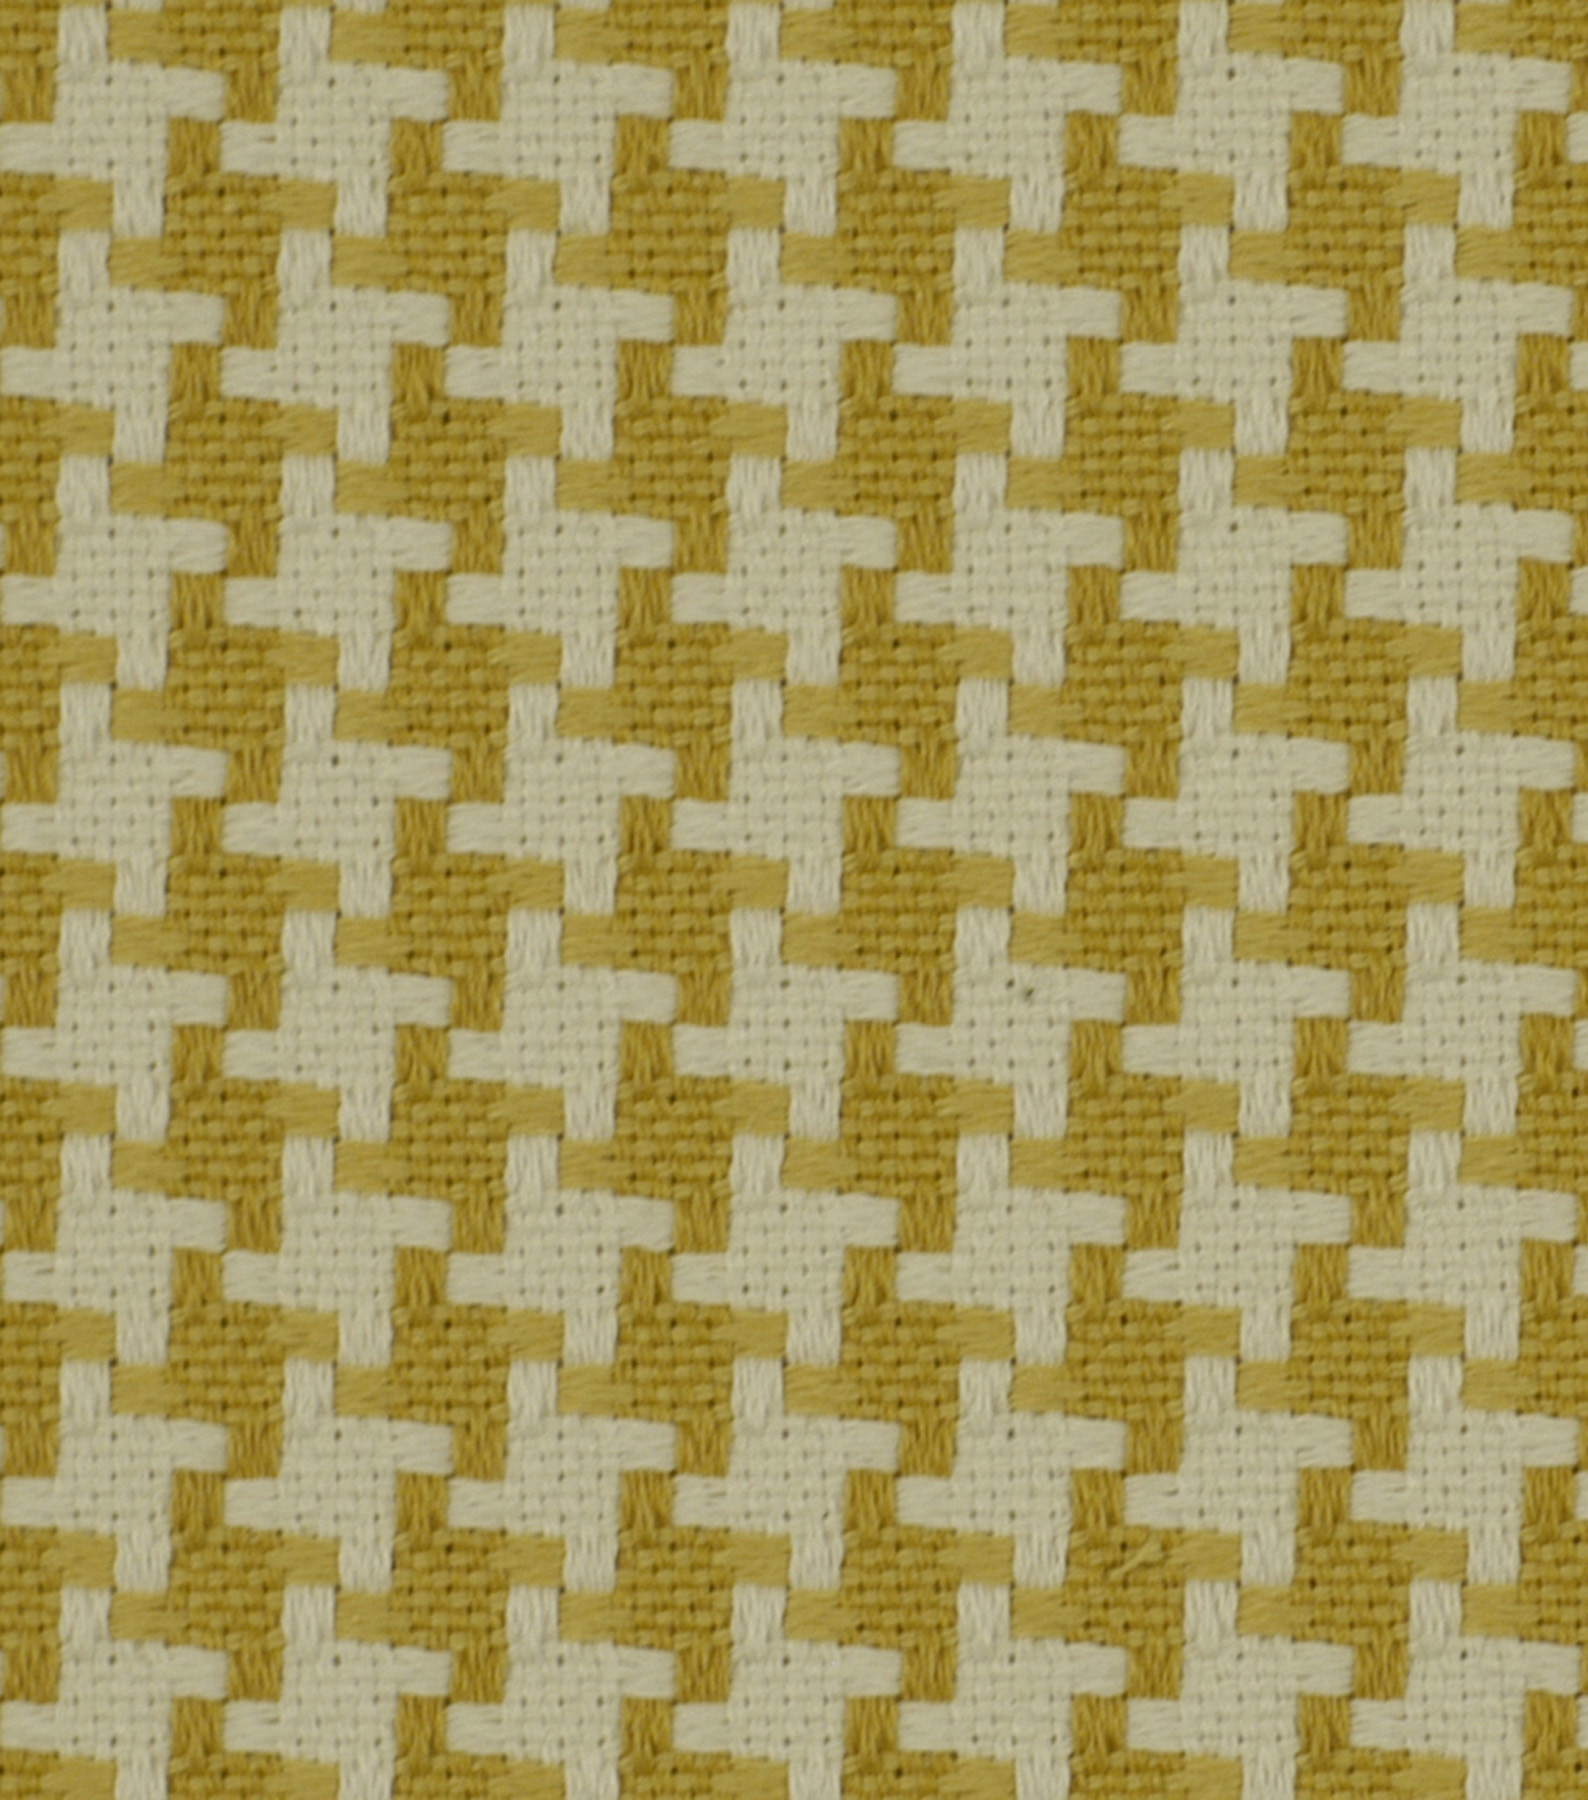 Home Decor 8\u0022x8\u0022 Fabric Swatch-Upholstery Robert Allen Square Pegs Raffia